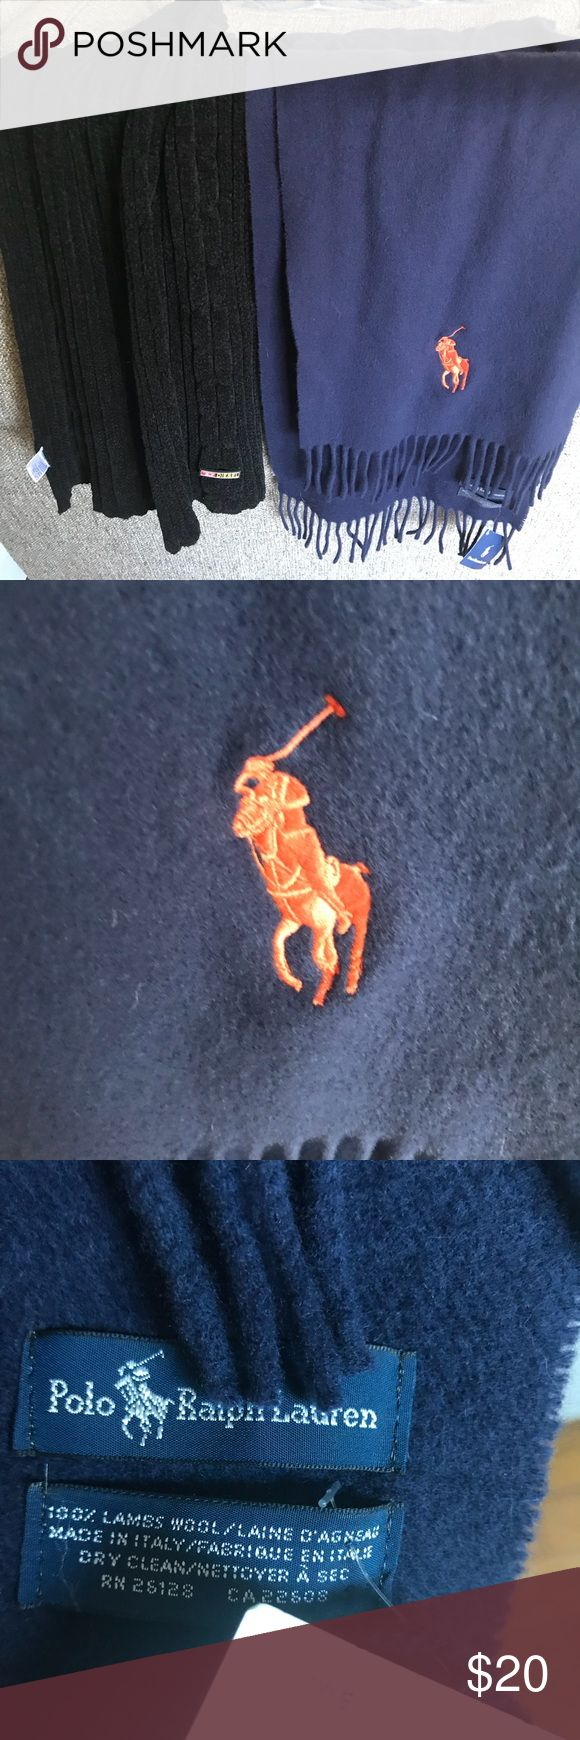 Men's scarves - RL and Diesel Soft black Diesel scarf and NWT Ralph Lauren Polo scarf, navy with orange logo. Polo by Ralph Lauren Accessories Scarves